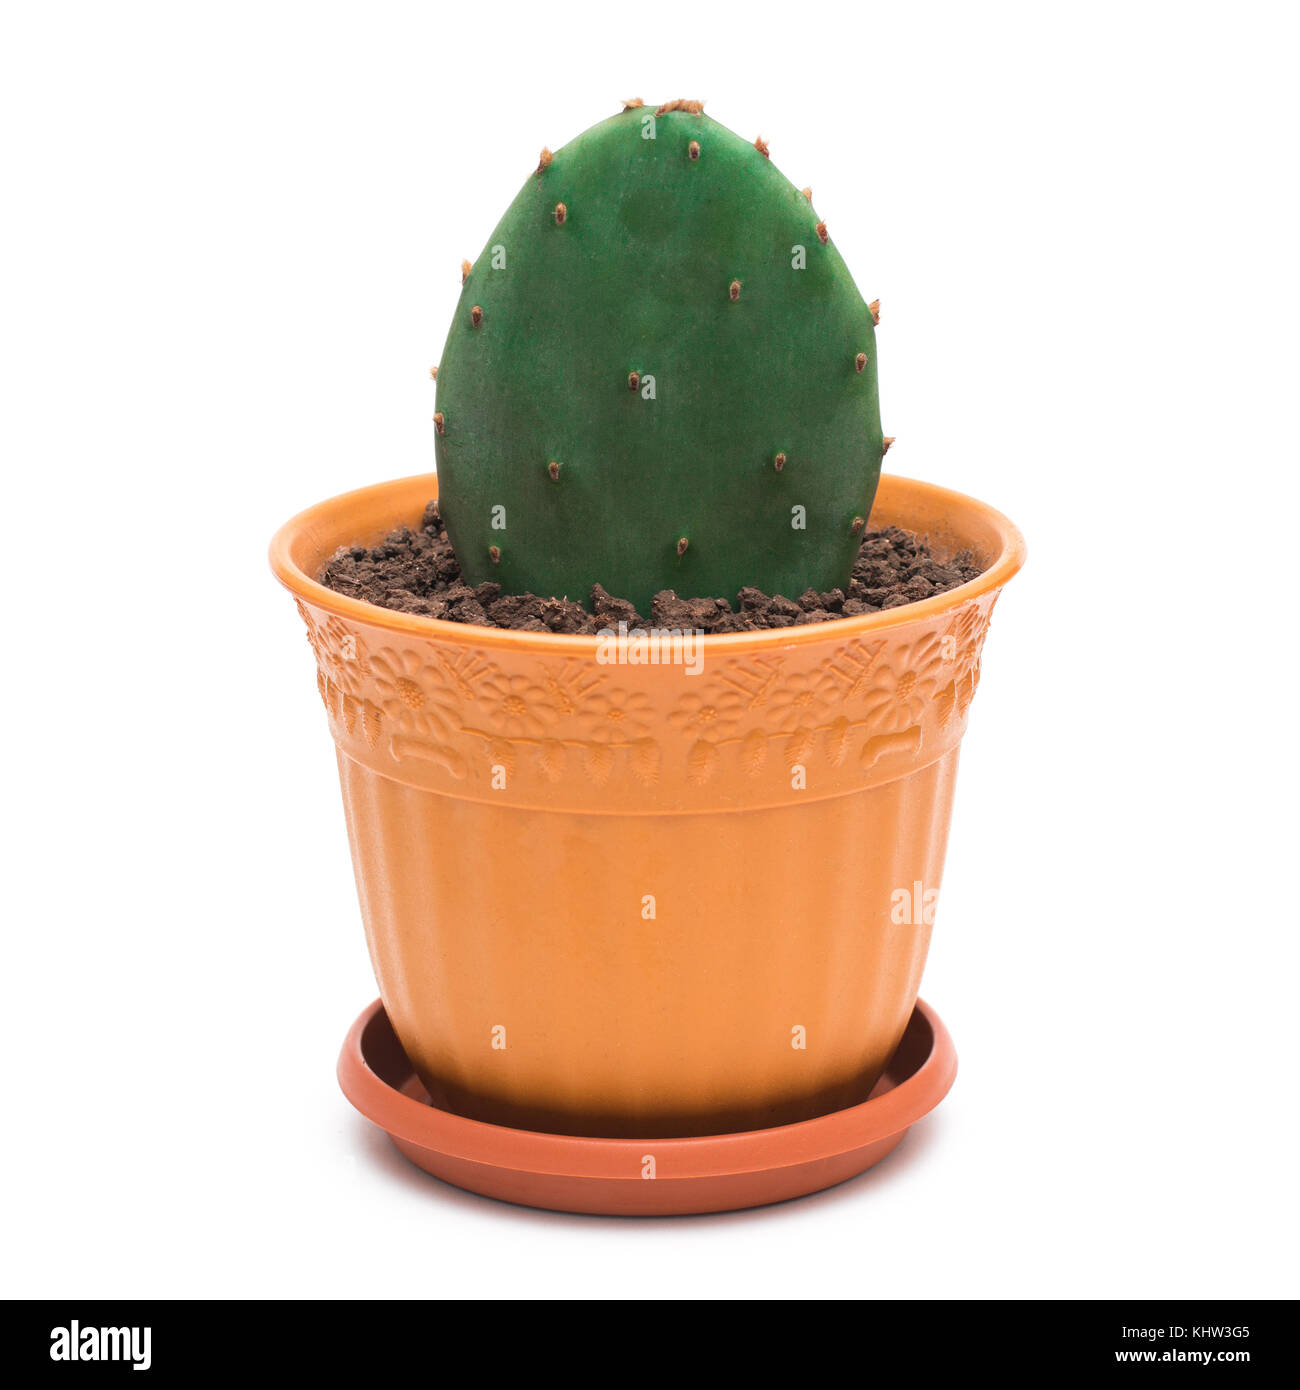 Prickly pear cactus in a pot on white background - Stock Image